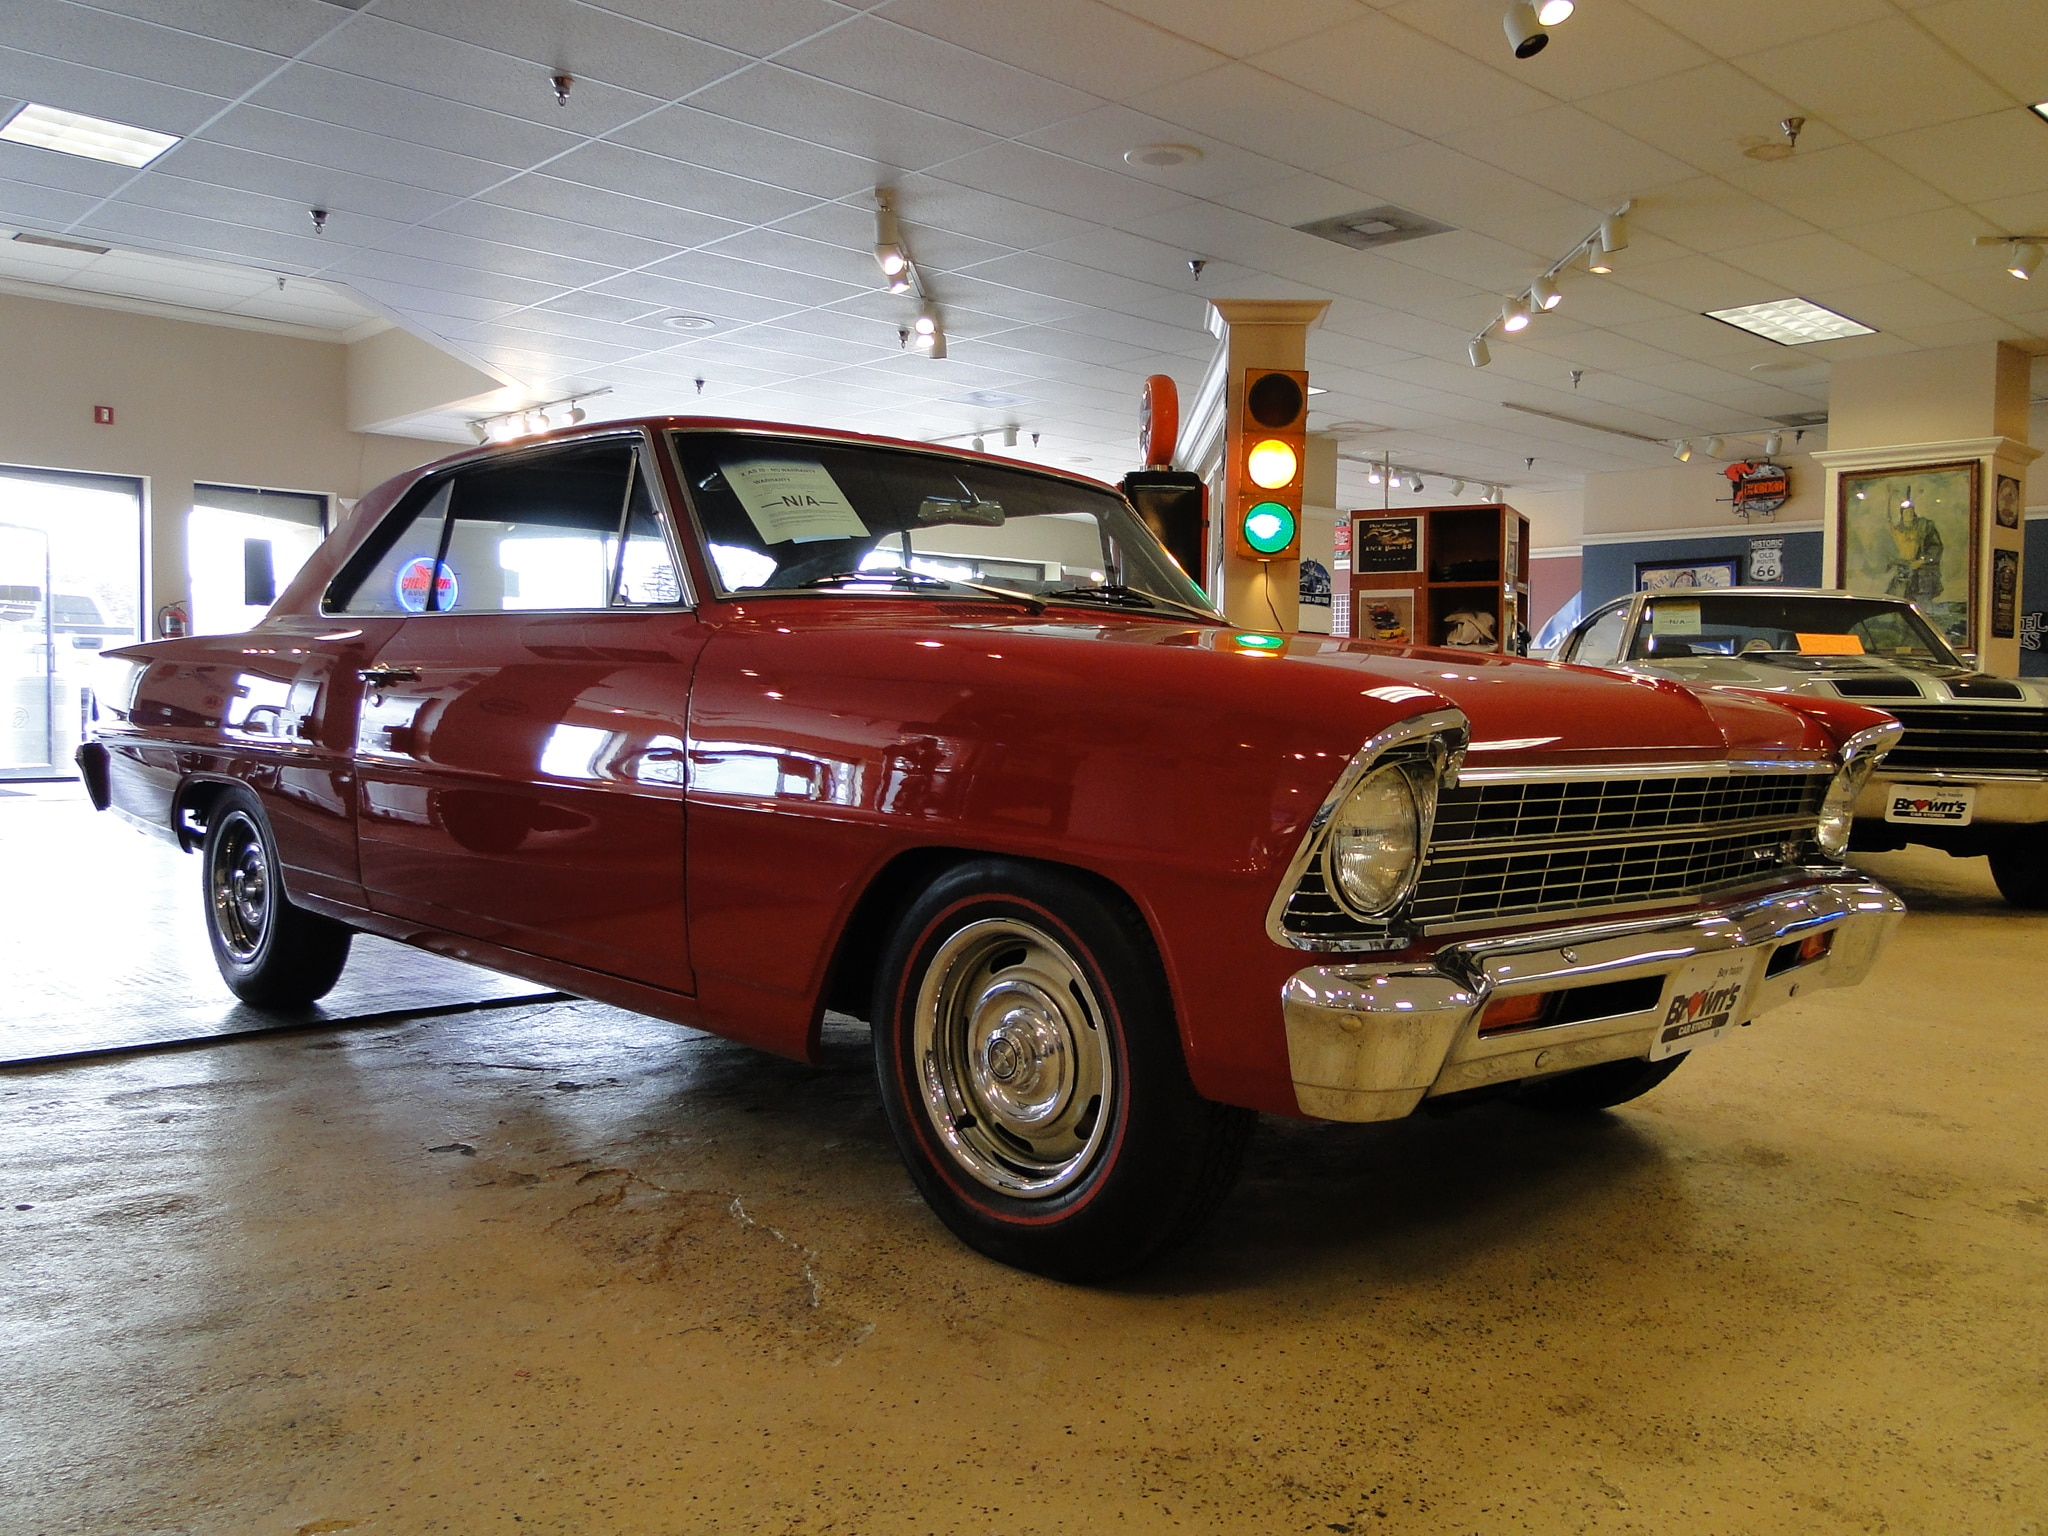 1967 Chevrolet Nova REAL SS SOLD TO PA! Coupe Glen Burnie MD